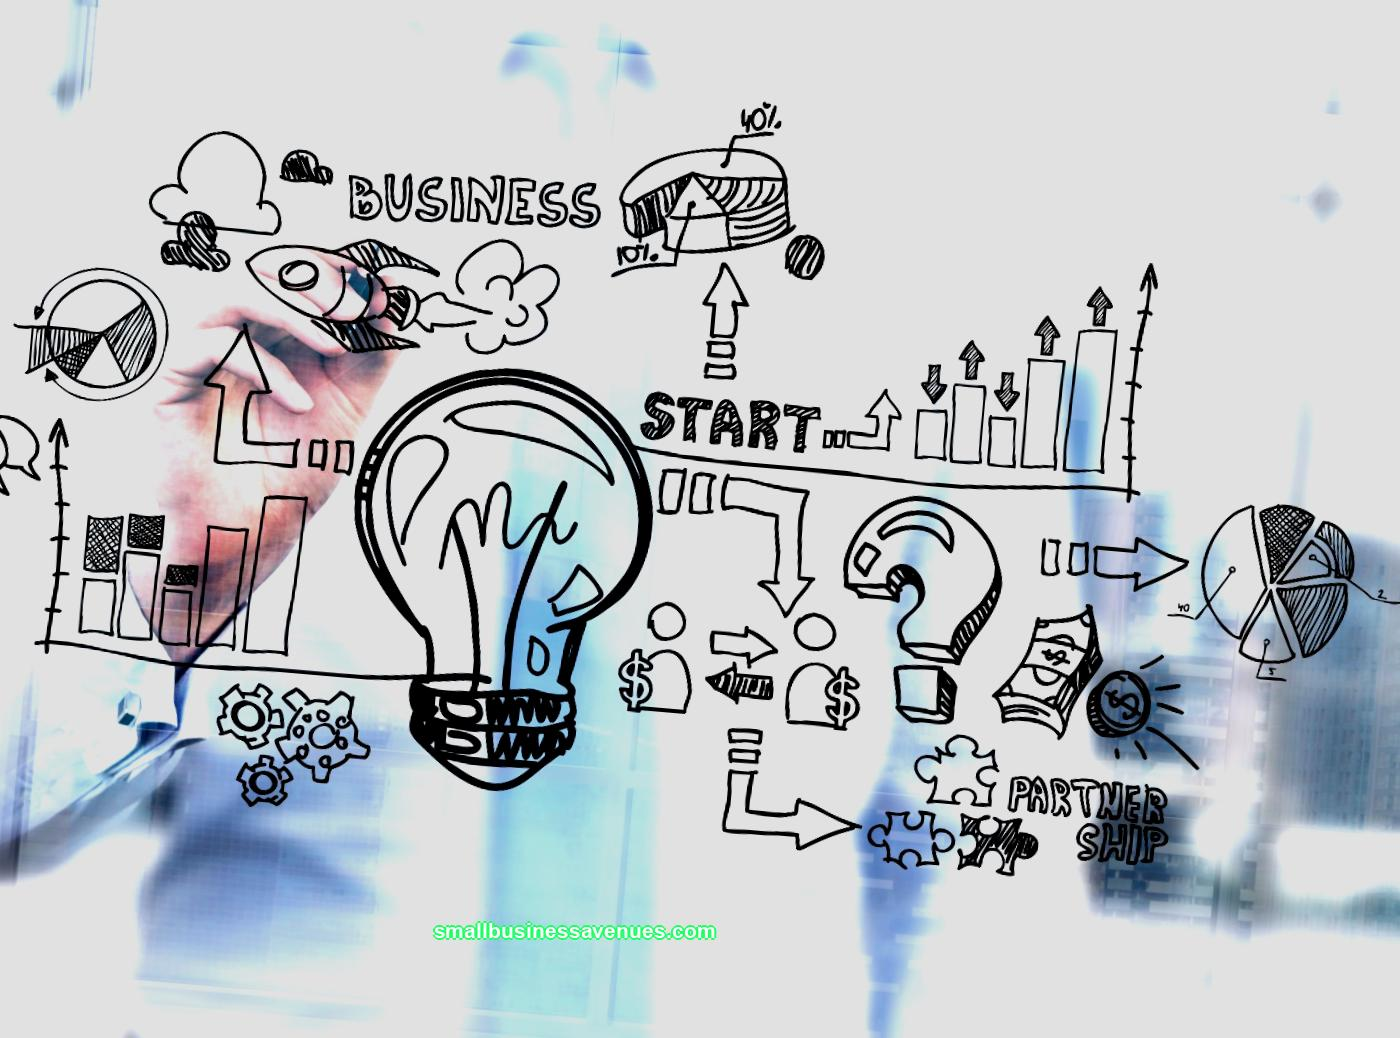 Do you want to find a profitable business idea? In this article, I will share 6 ways to help you find a business idea.